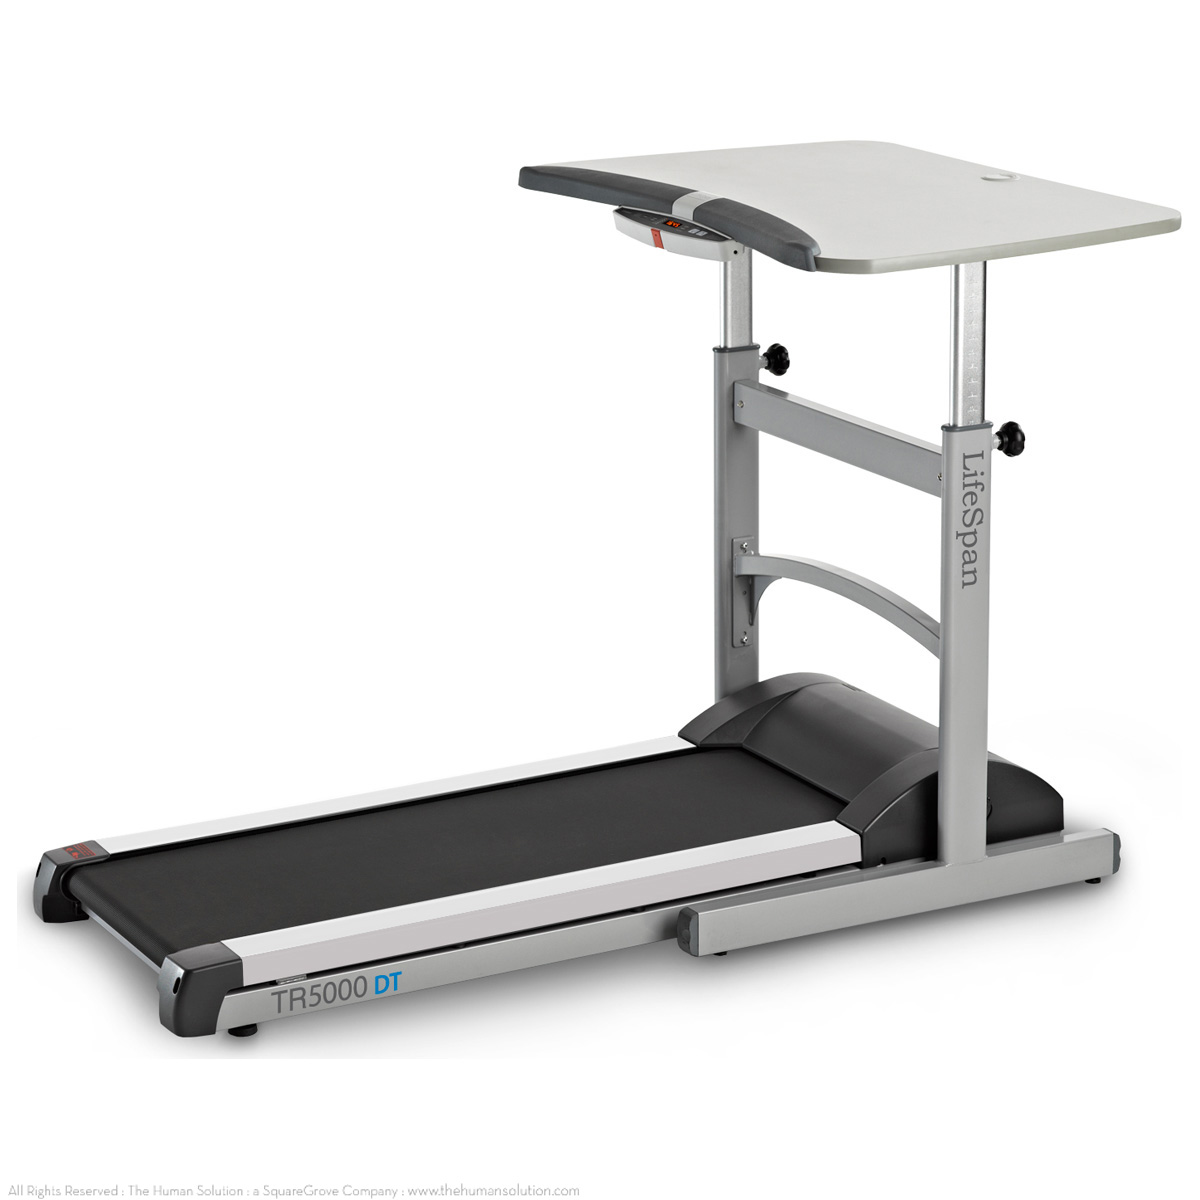 Treadmill Desk Steelcase images